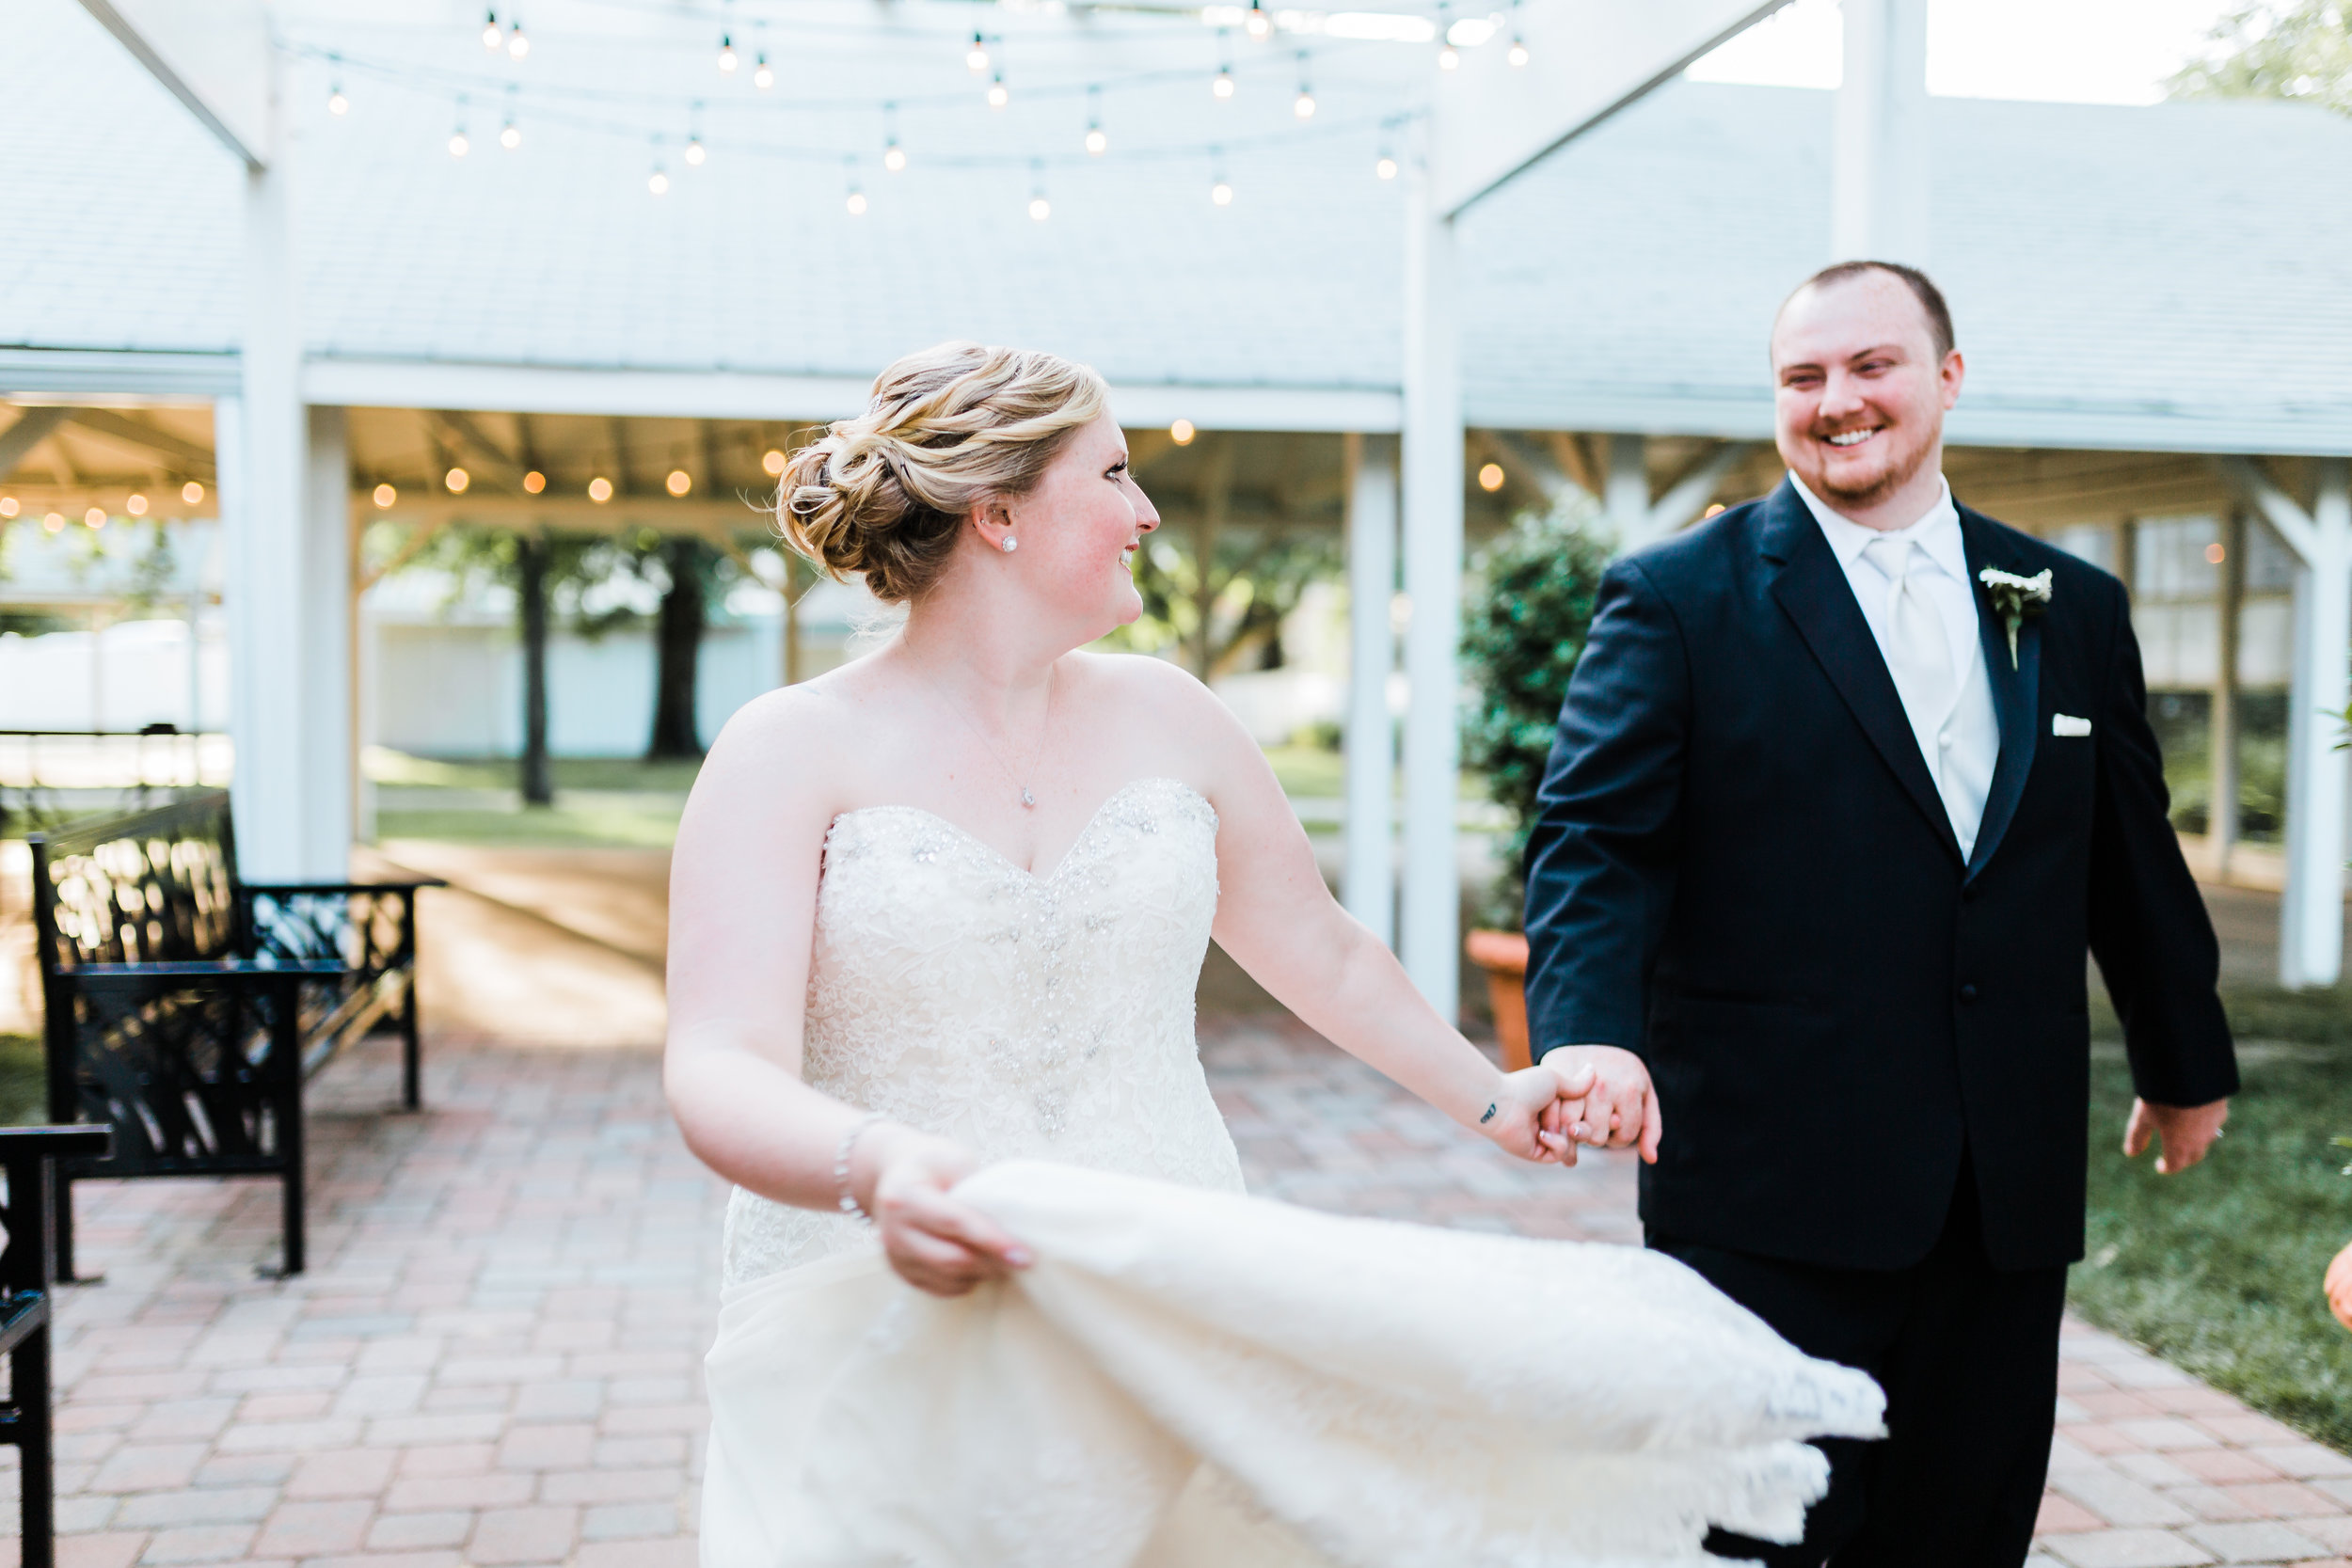 bride and groom running together and having fun - maryland wedding photographer and cinematographer